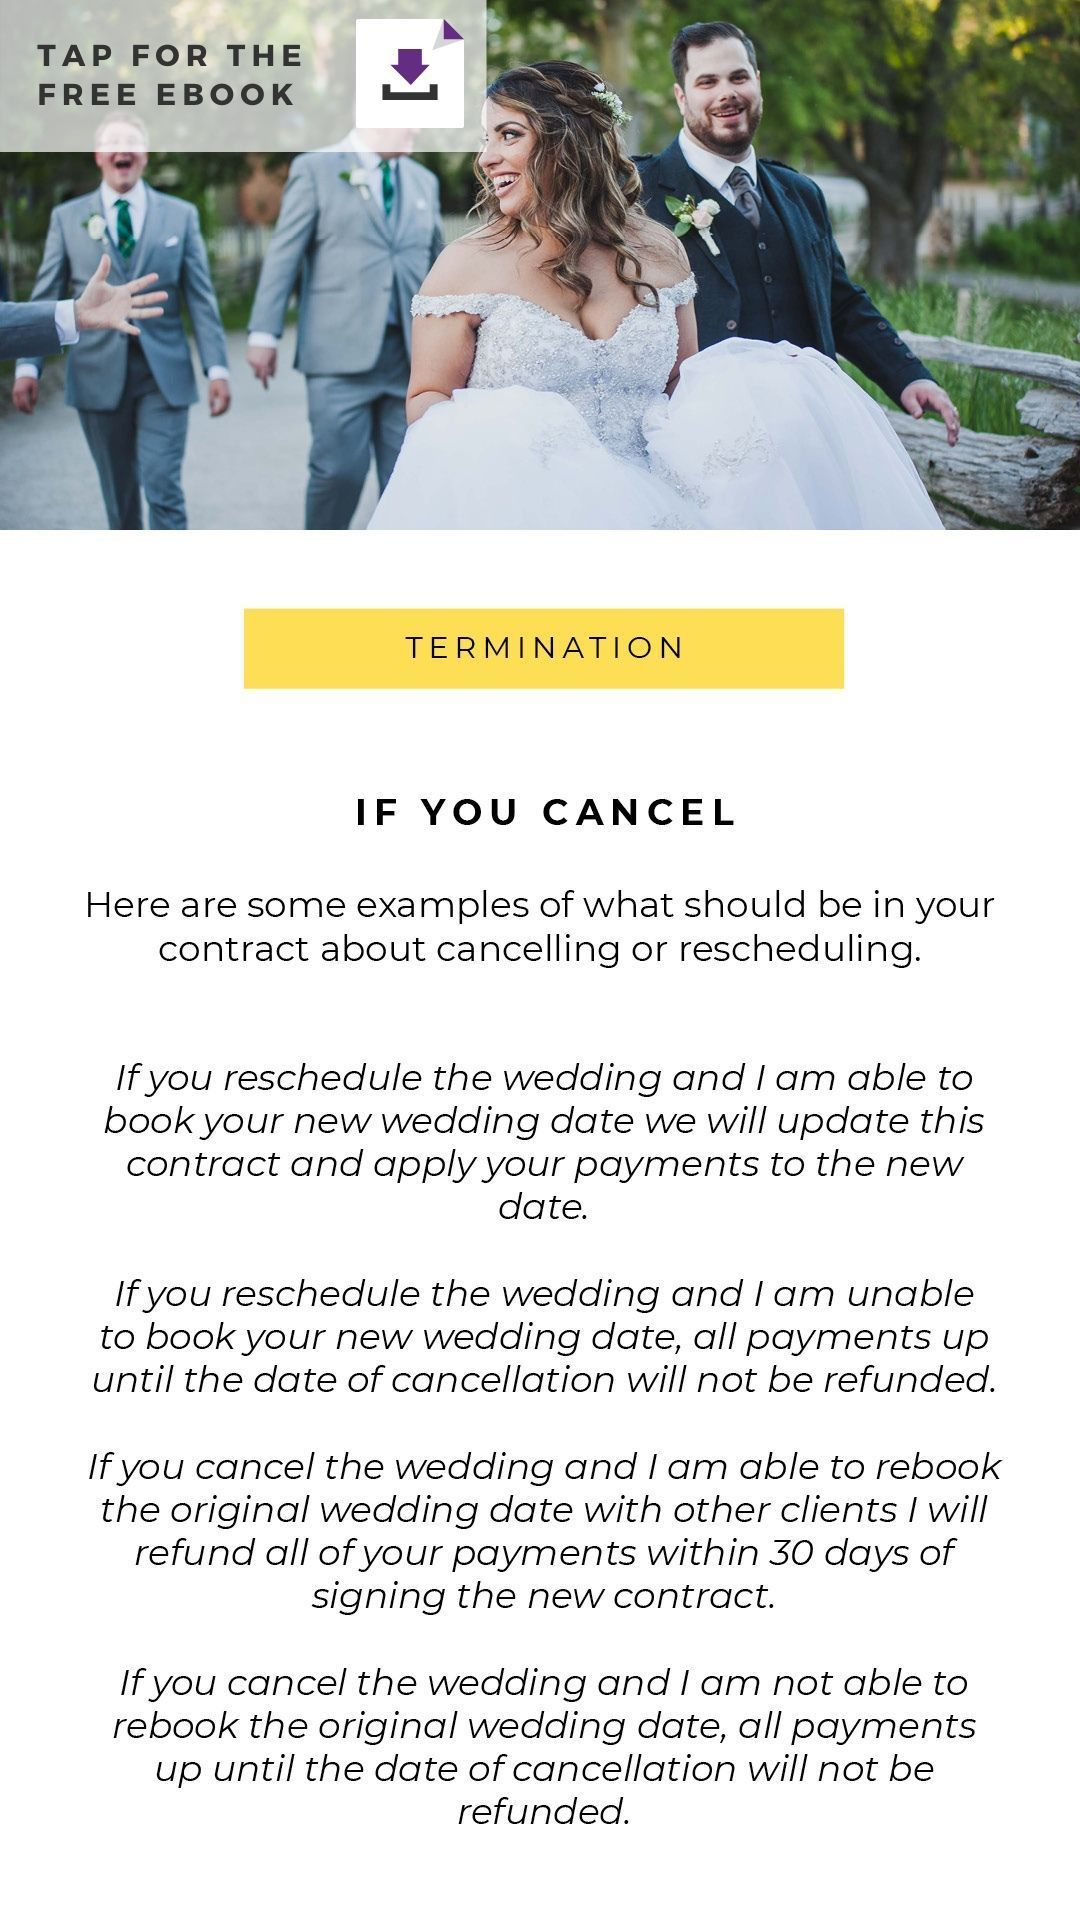 Wedding Photography Contracts Guide Photography contract